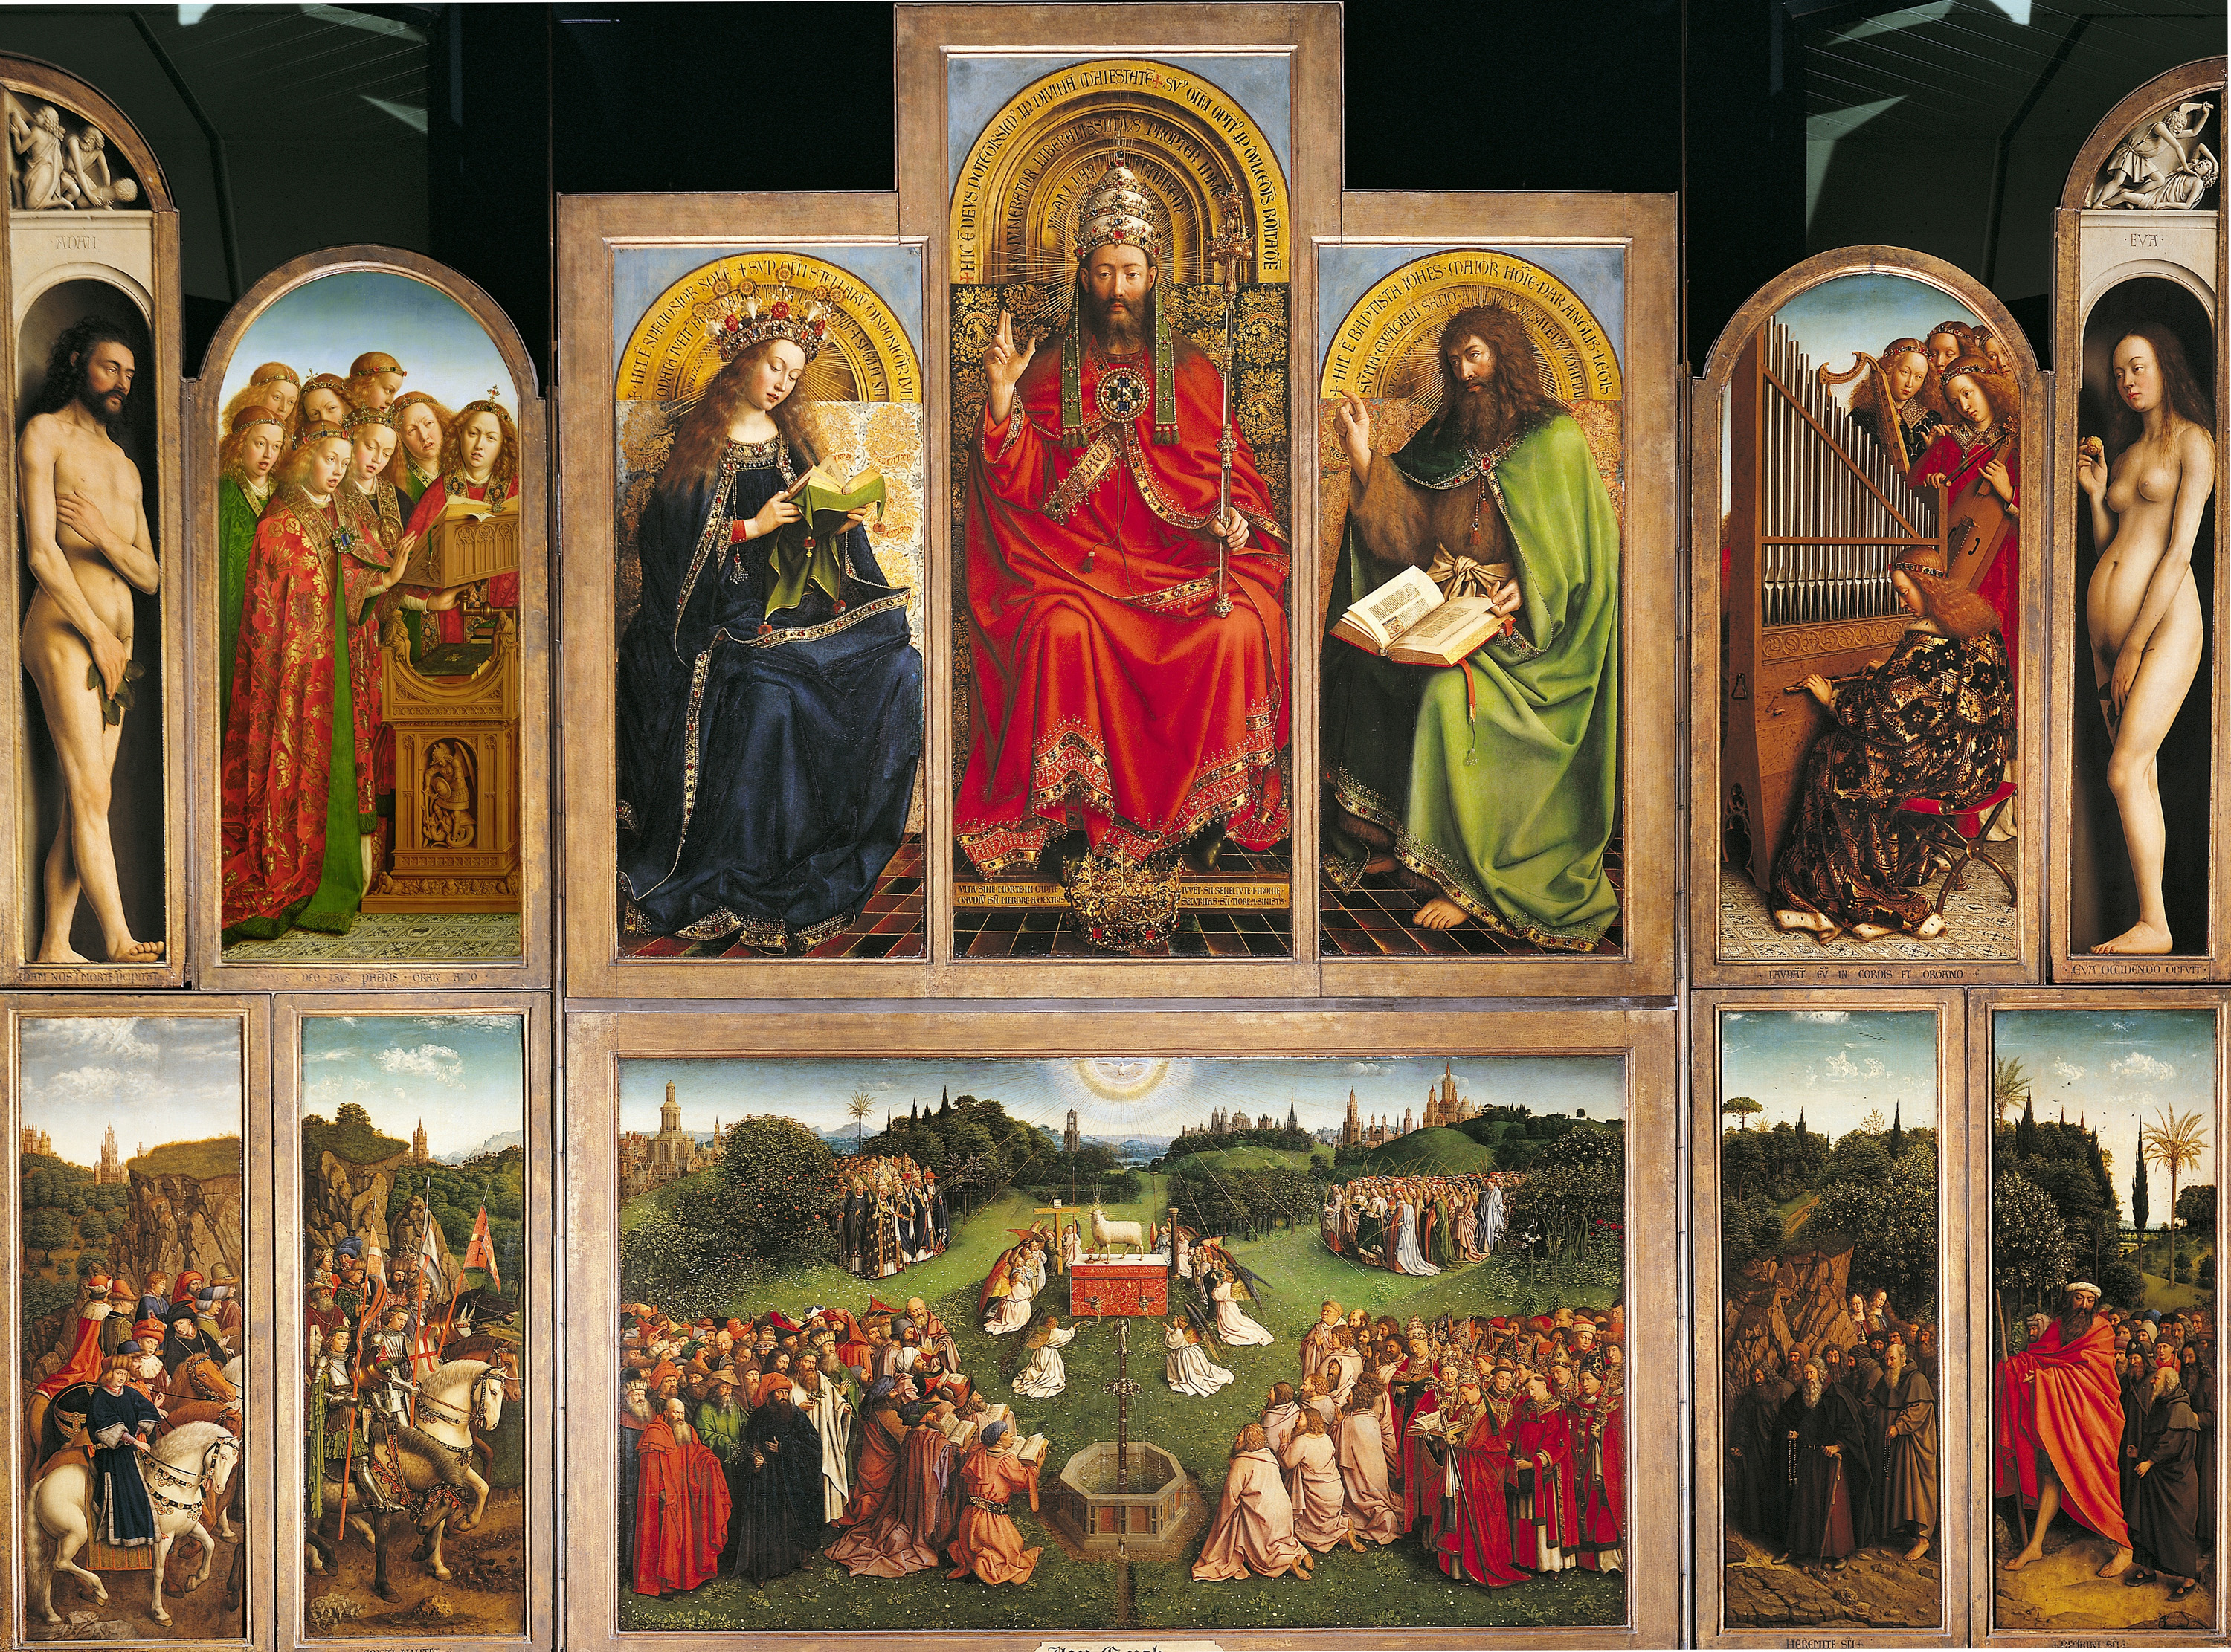 ghent-altarpiece-custom-enlarge